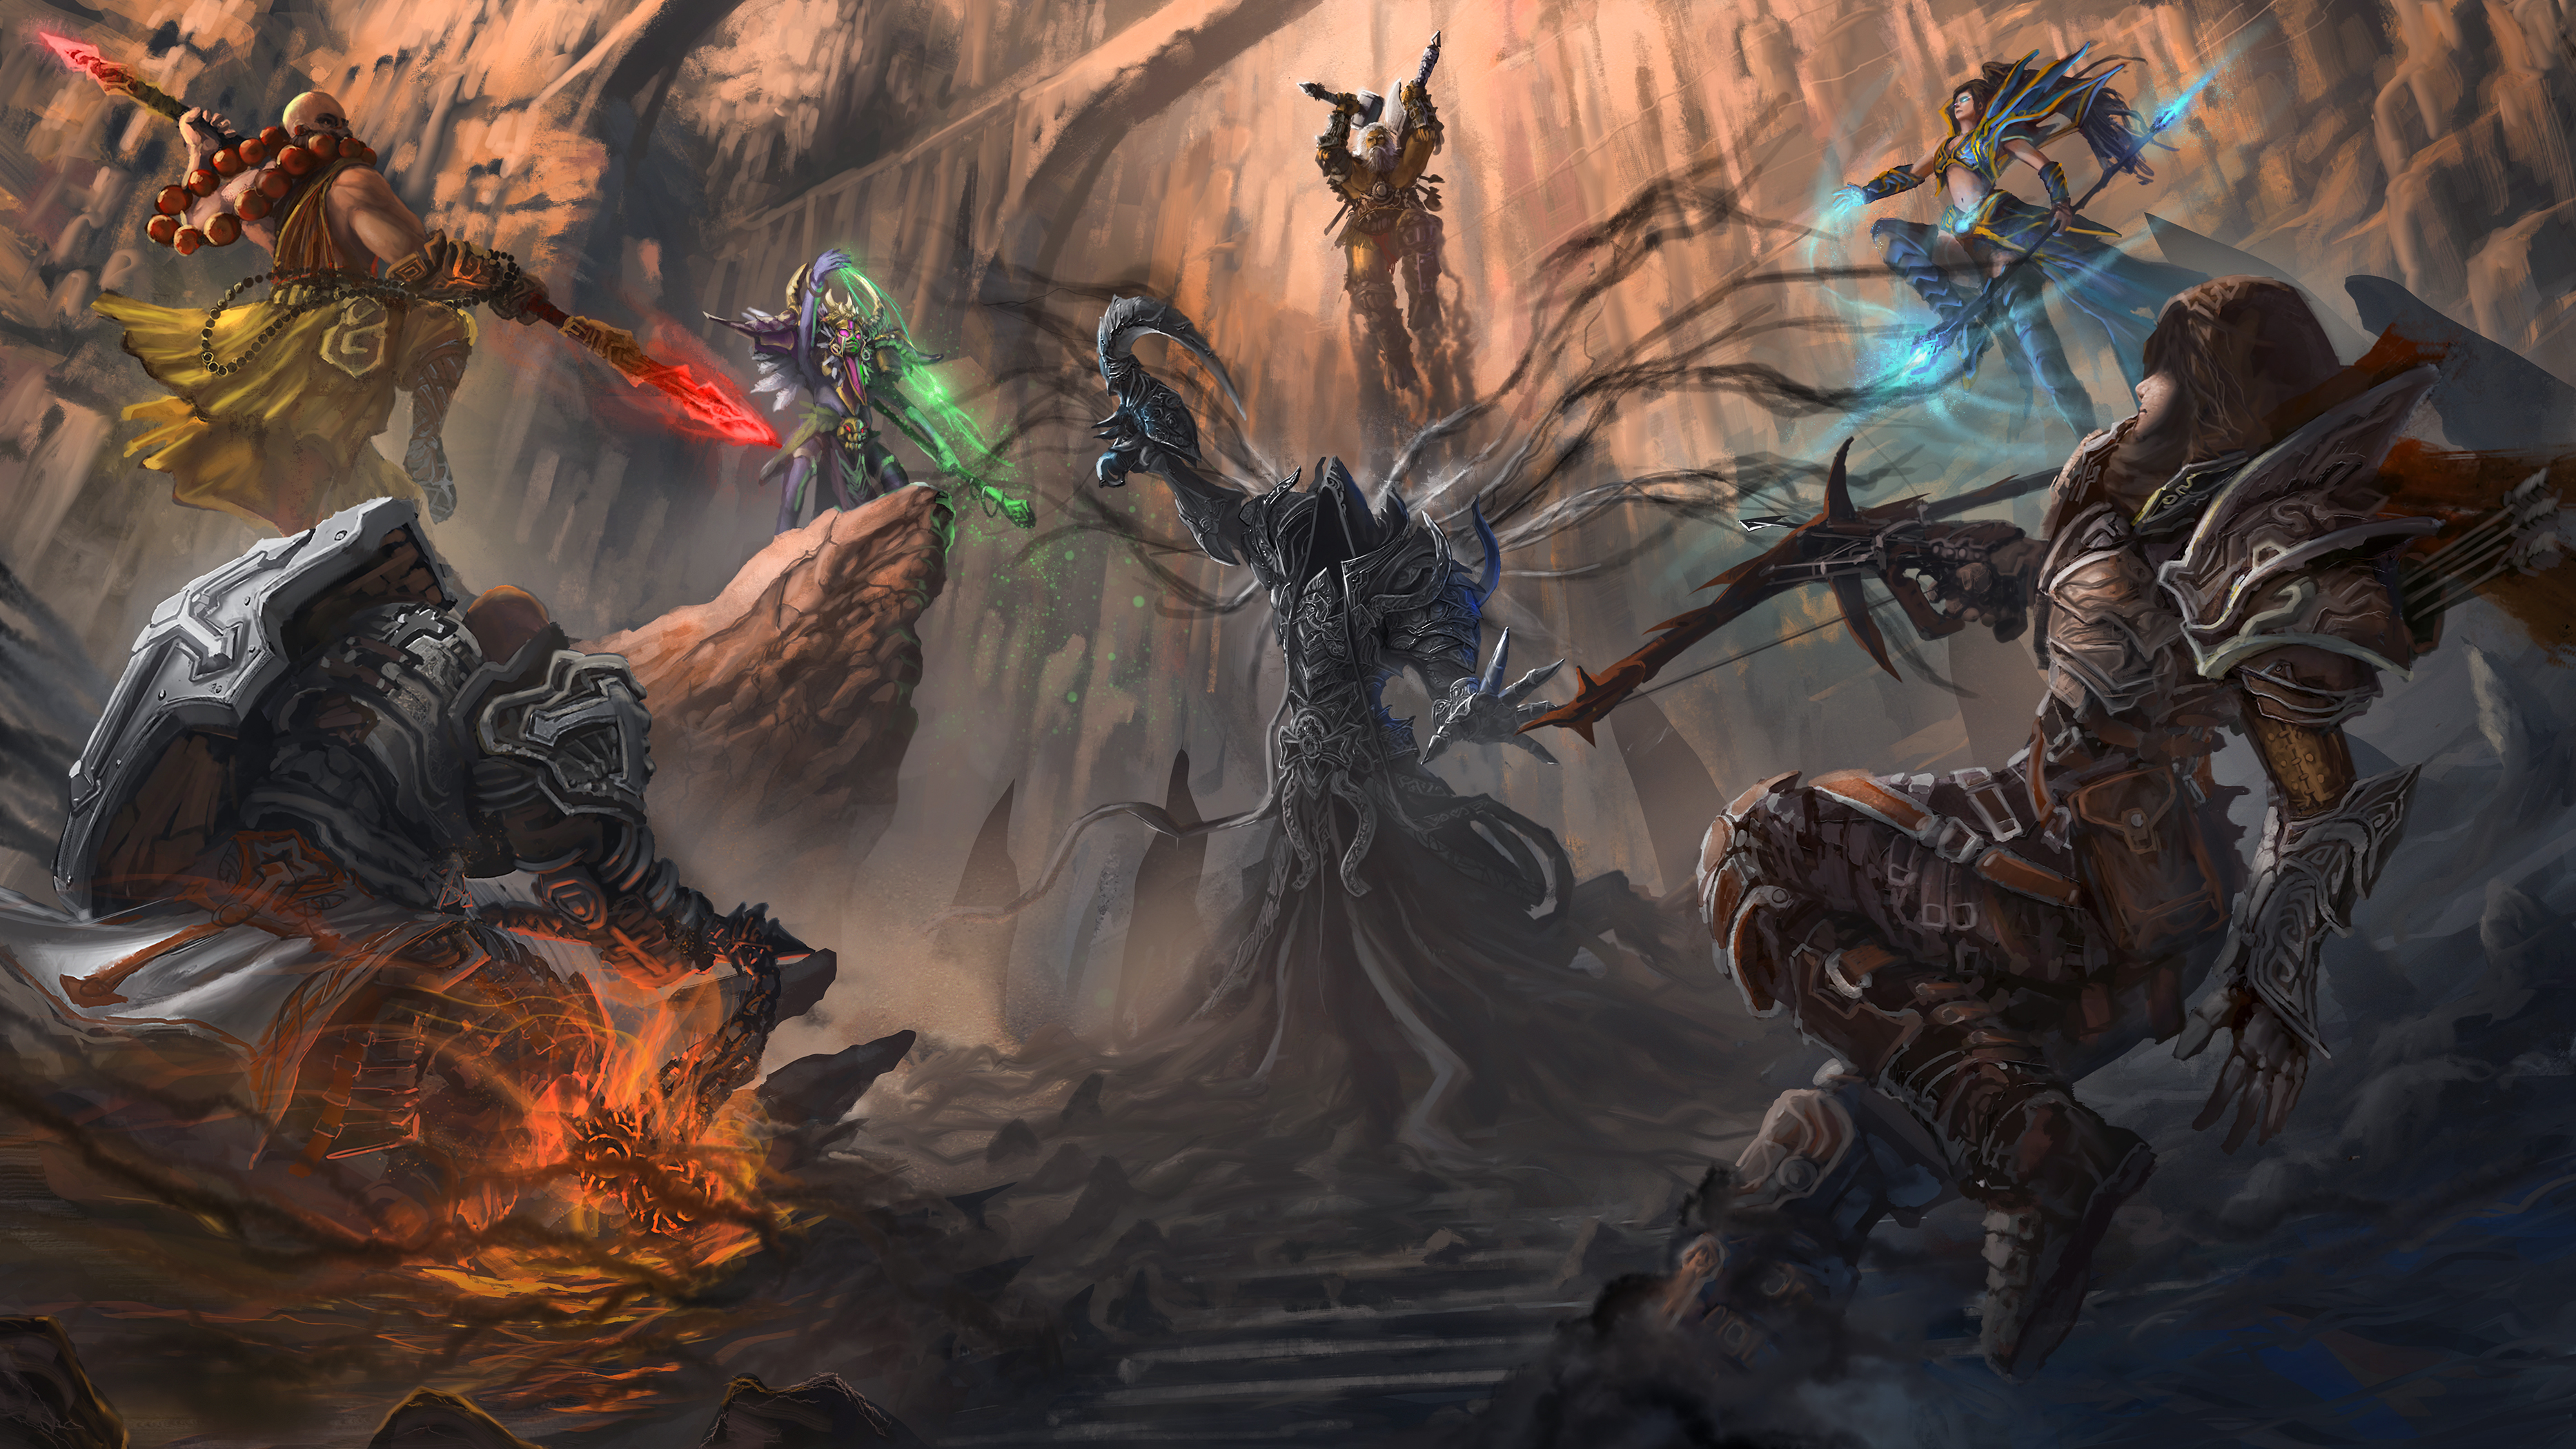 Diablo 3 ReaperOfSouls fanart - All Against Death by novaillusion